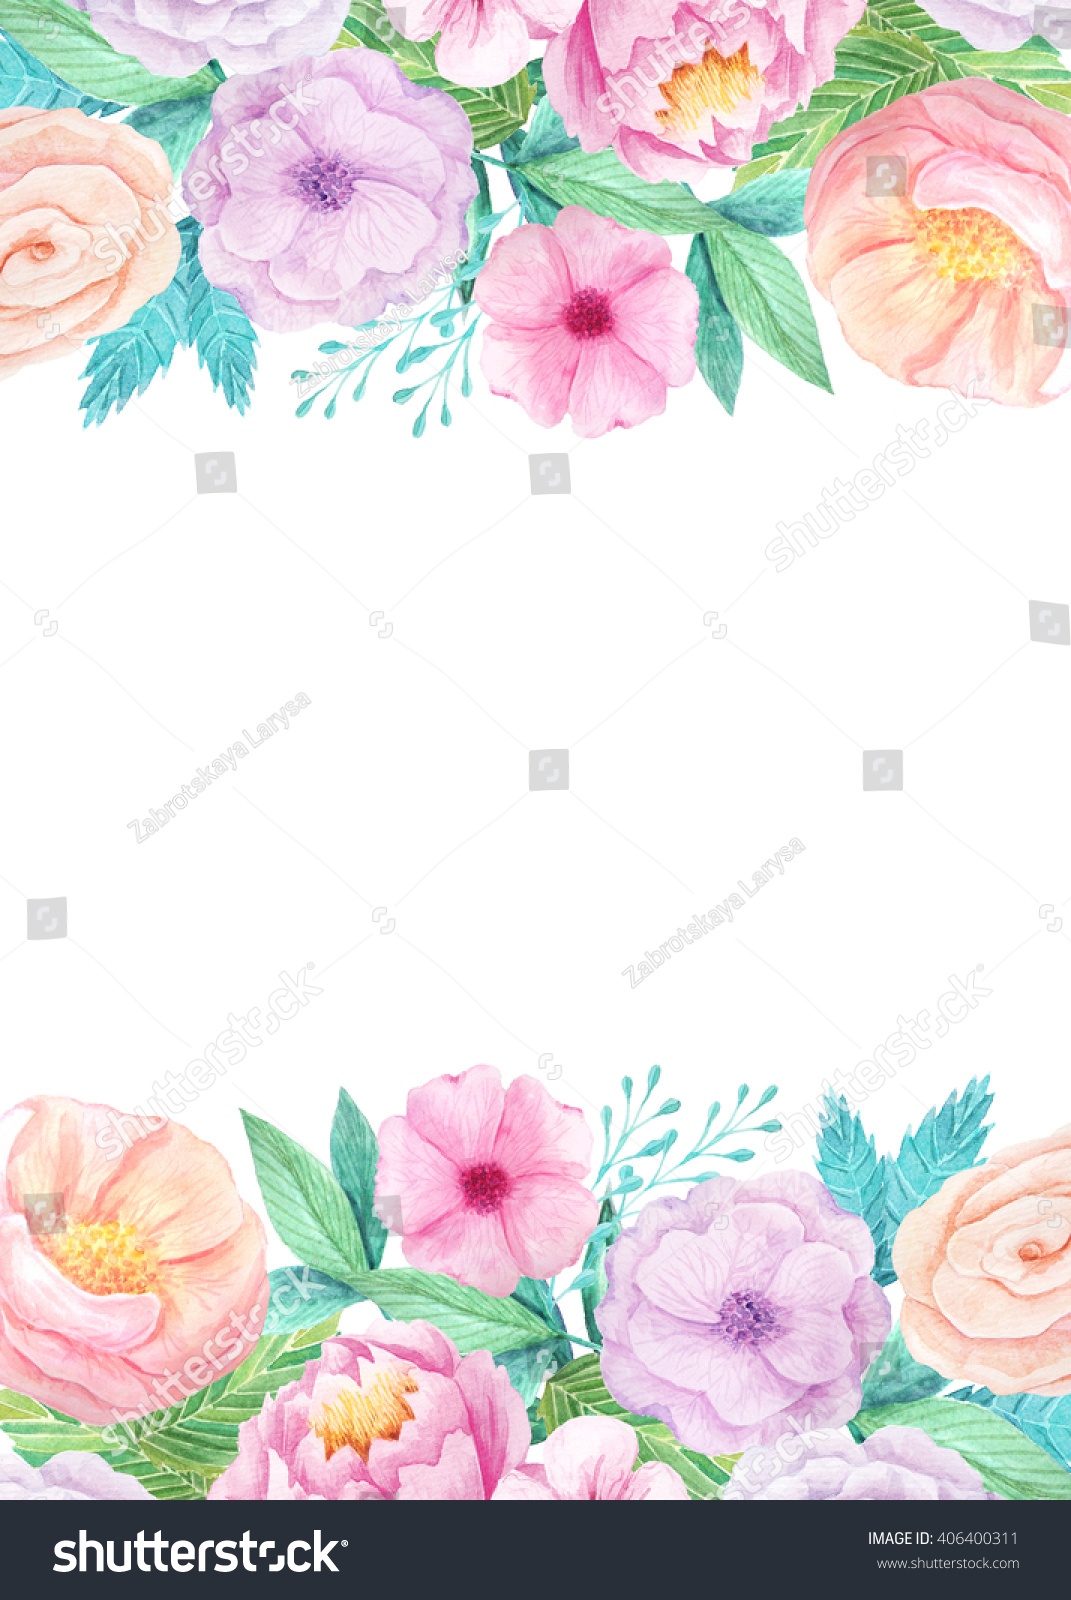 wedding invitation template with hand painted watercolor